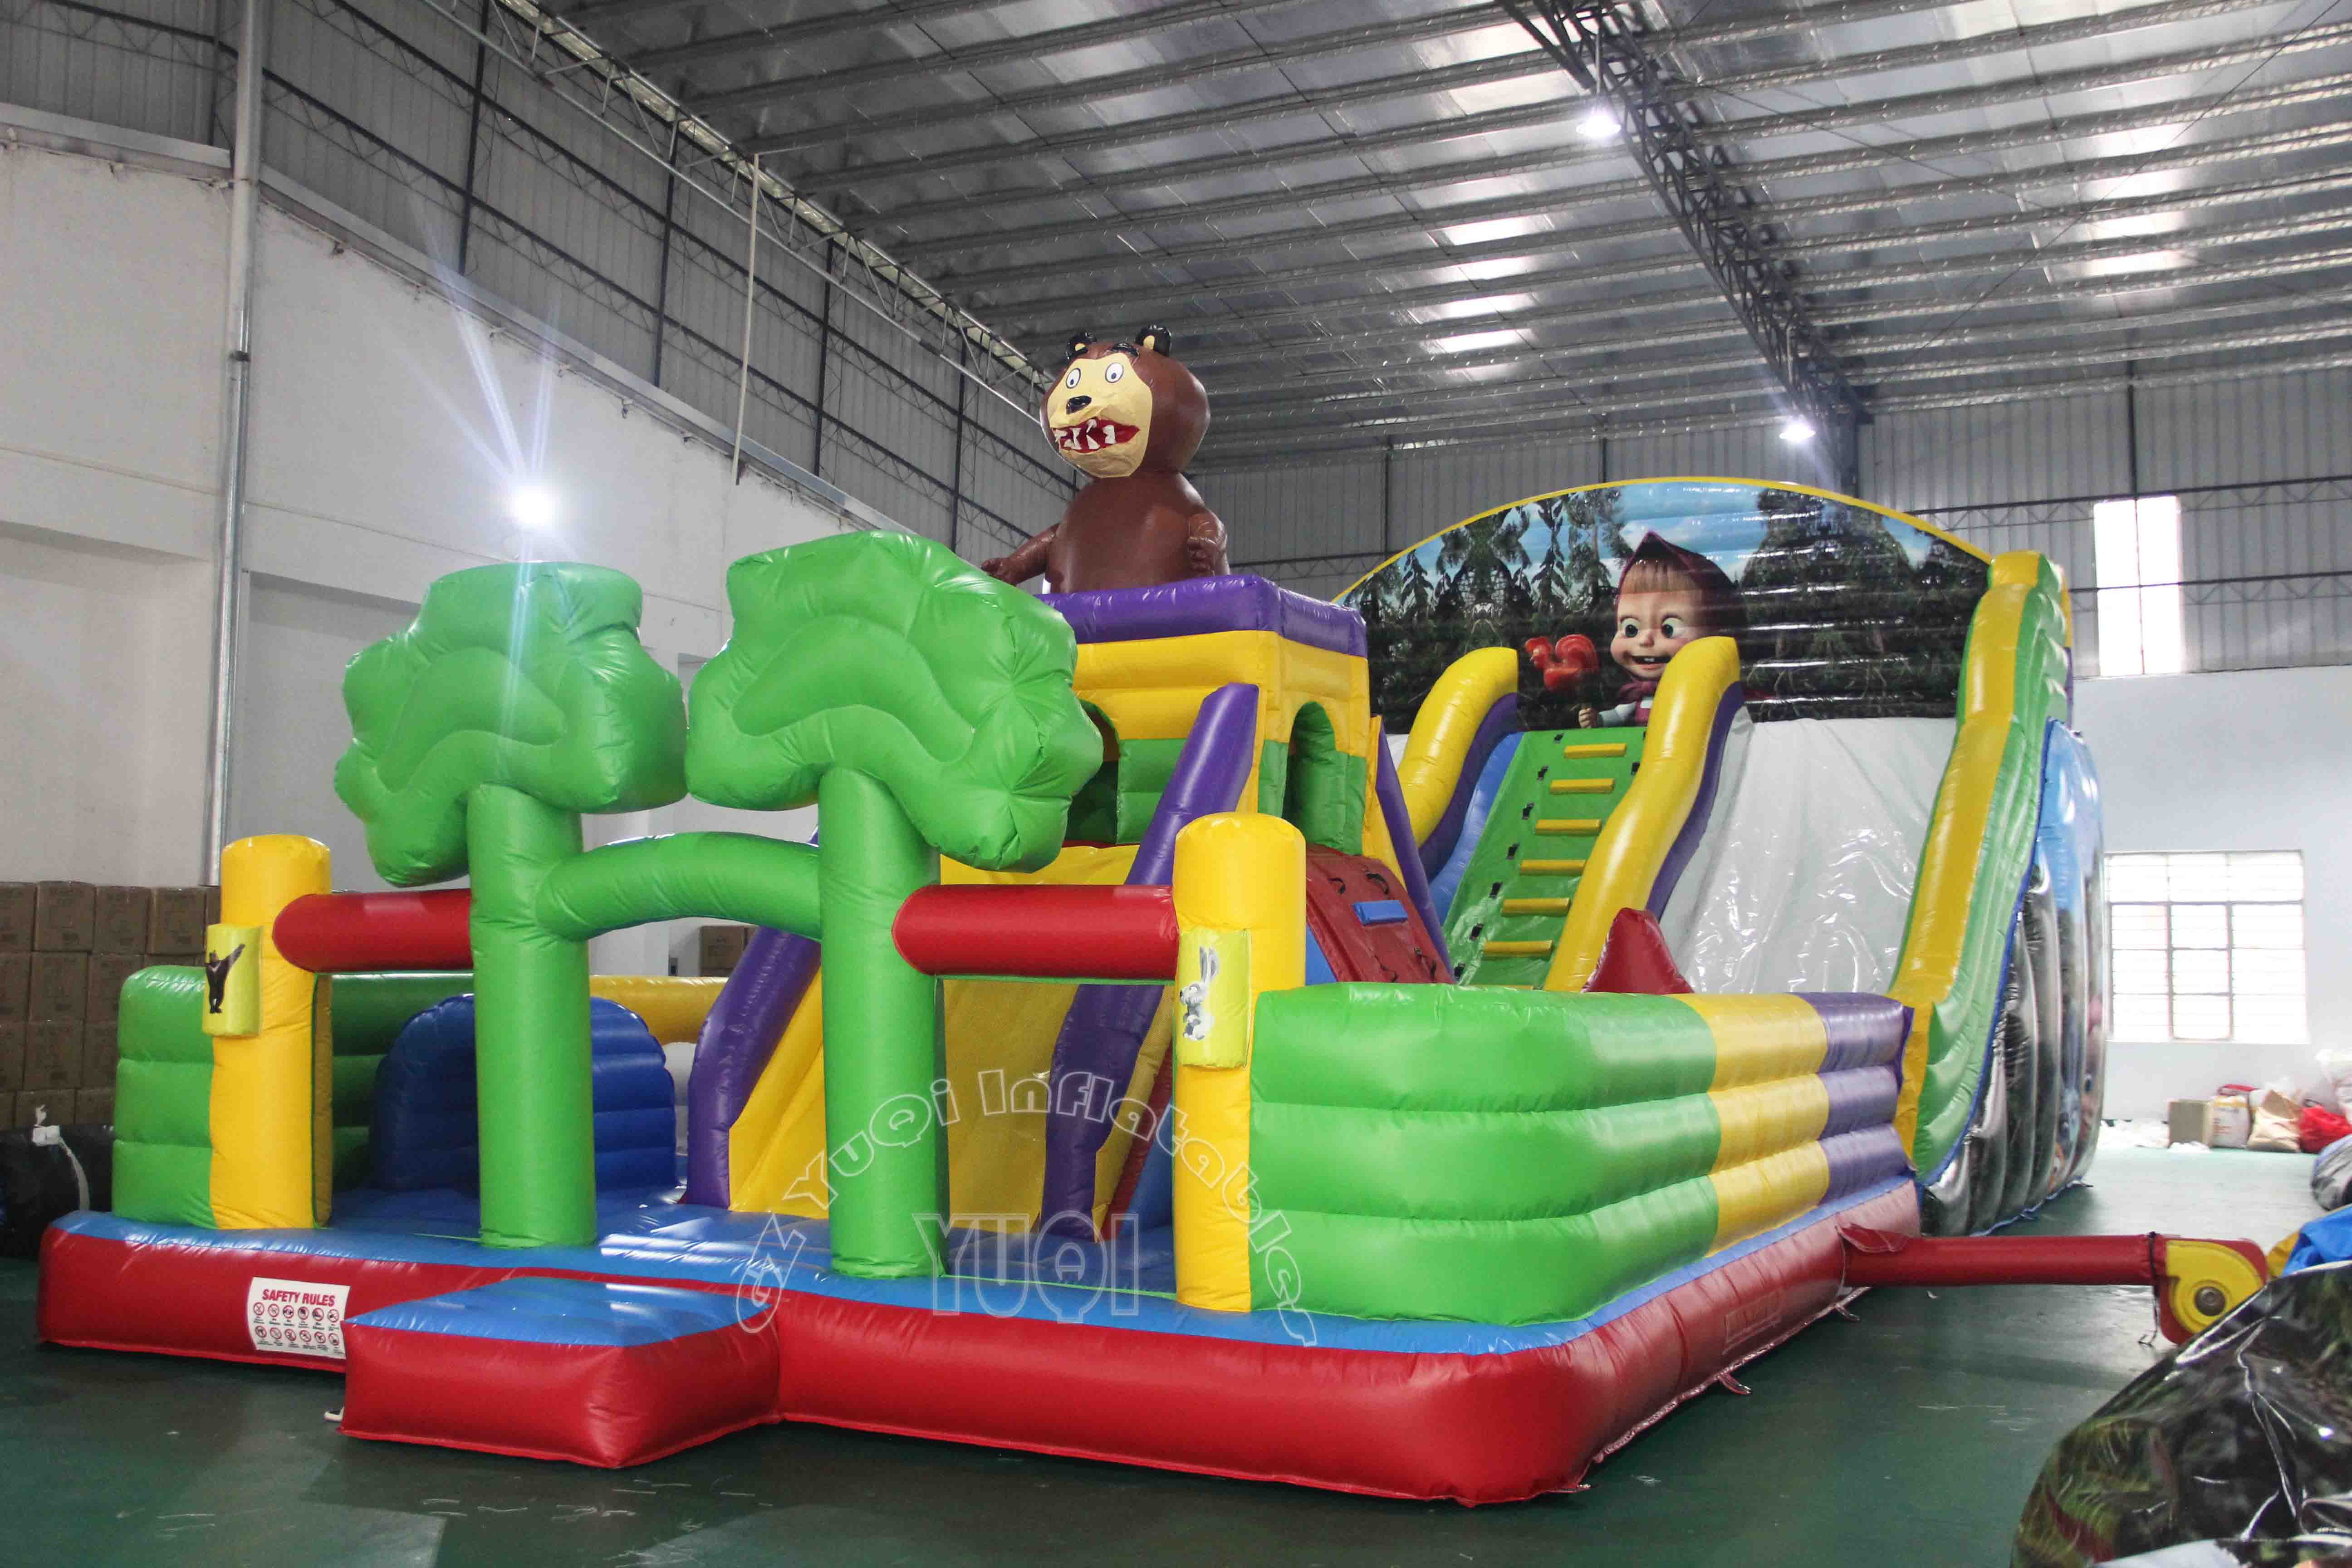 YUQI-Yq60 Giant Inflatable Play Park Outdoor Playground Amusement Park